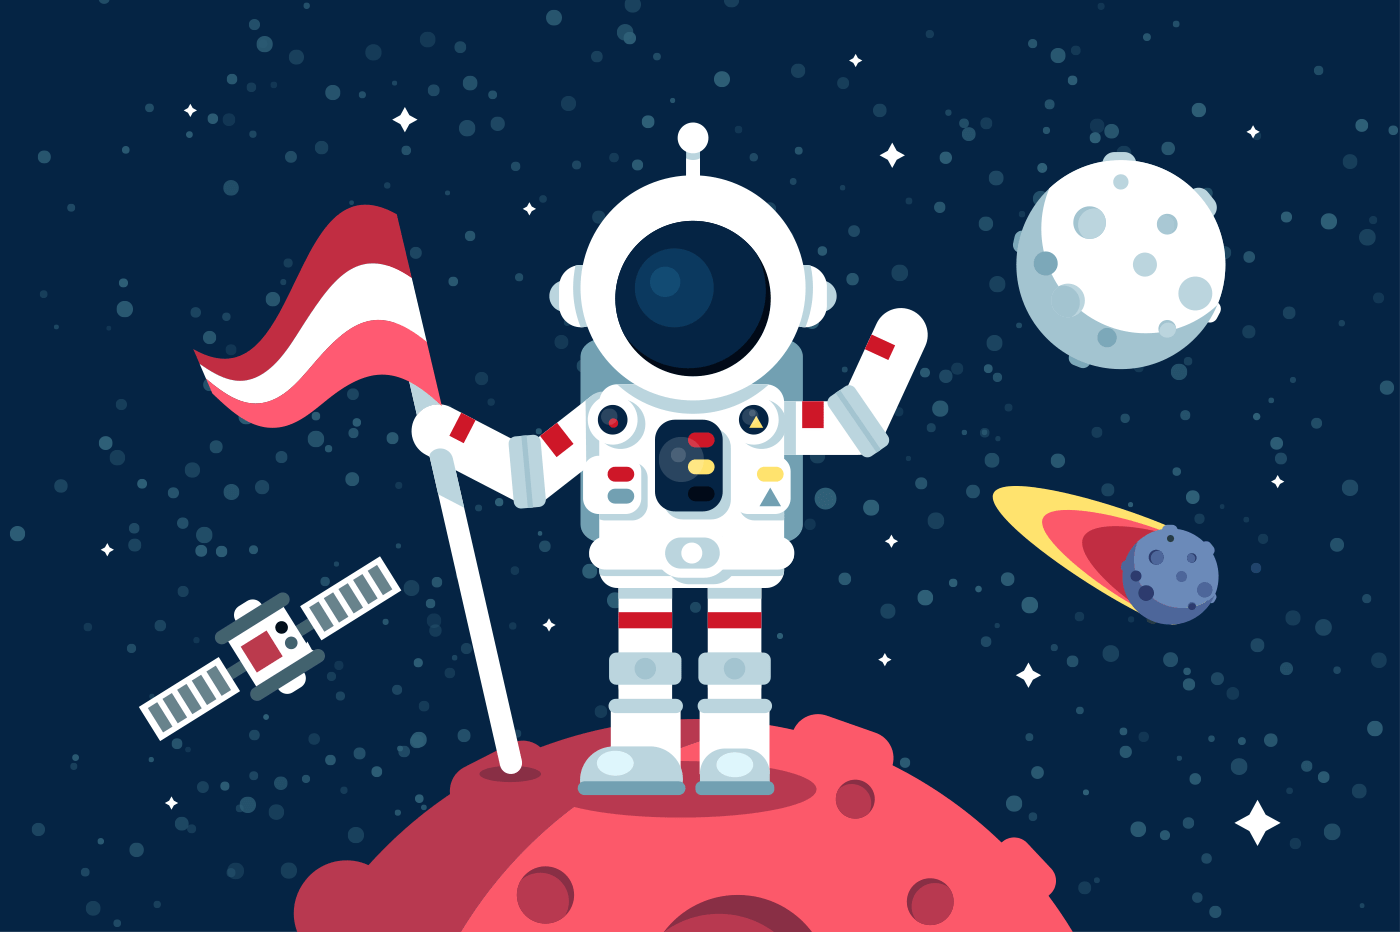 Astronaut in space suit standing on moon with flag. Space walk on lunar surface. Flat. Vector illustration.